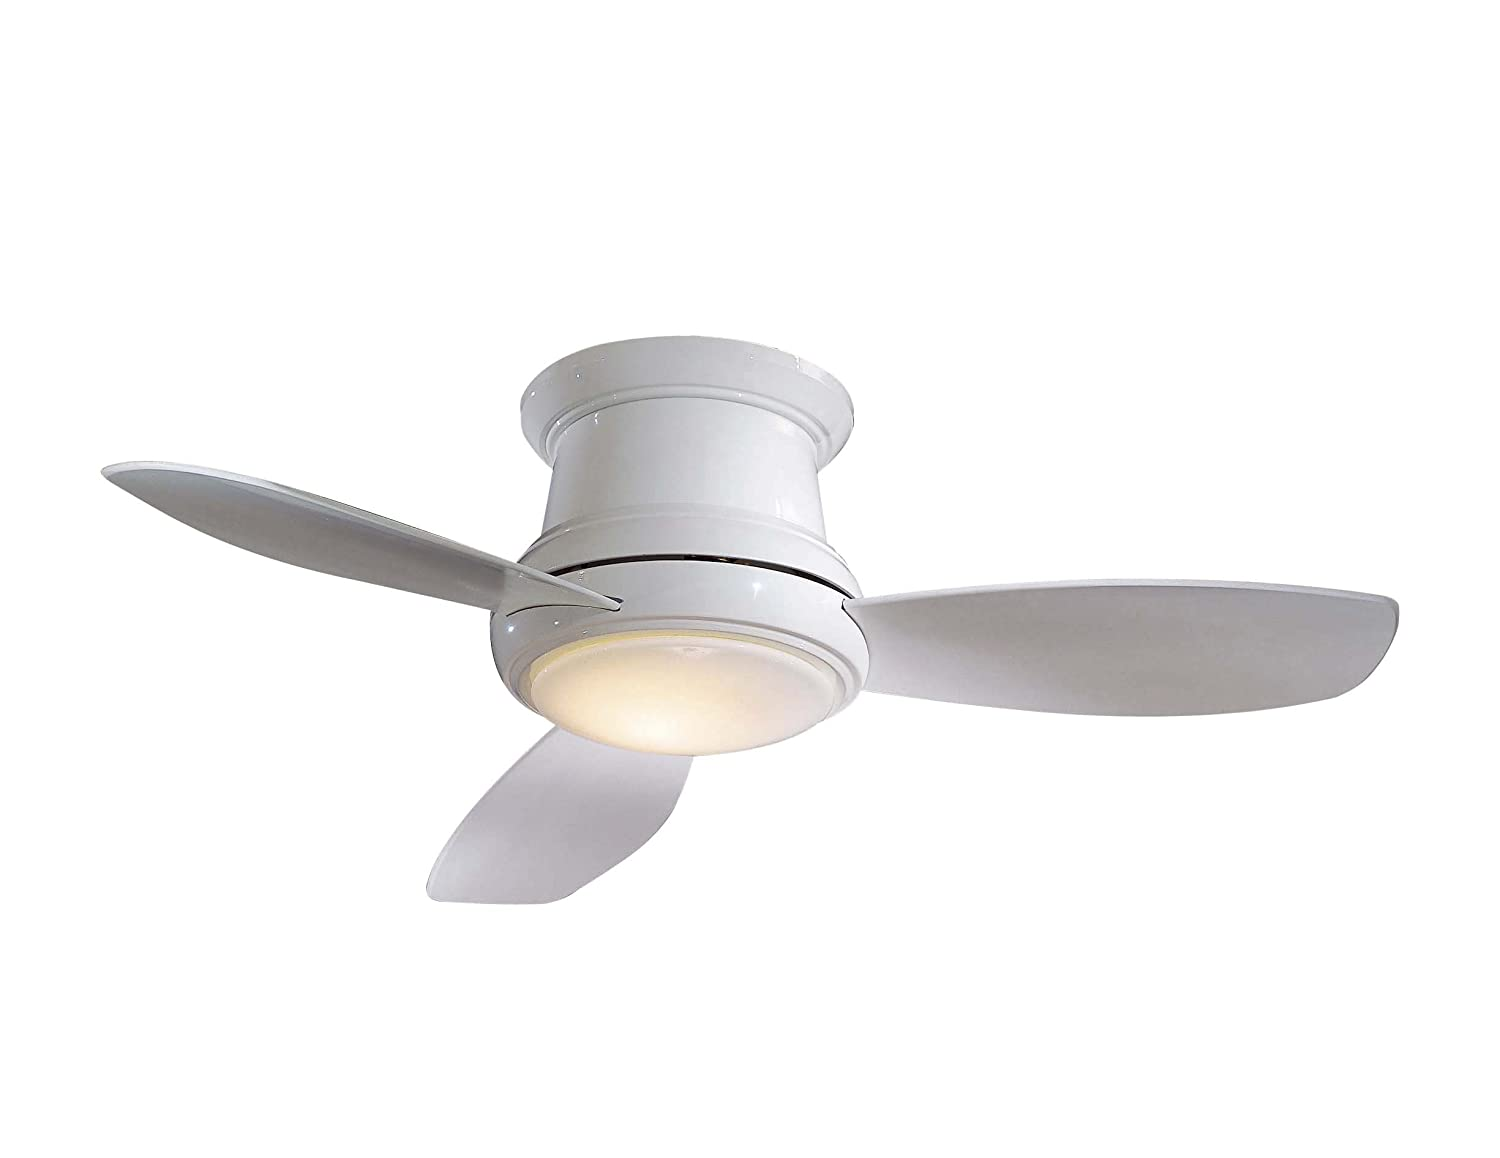 simple ways to make your ceiling fans look better